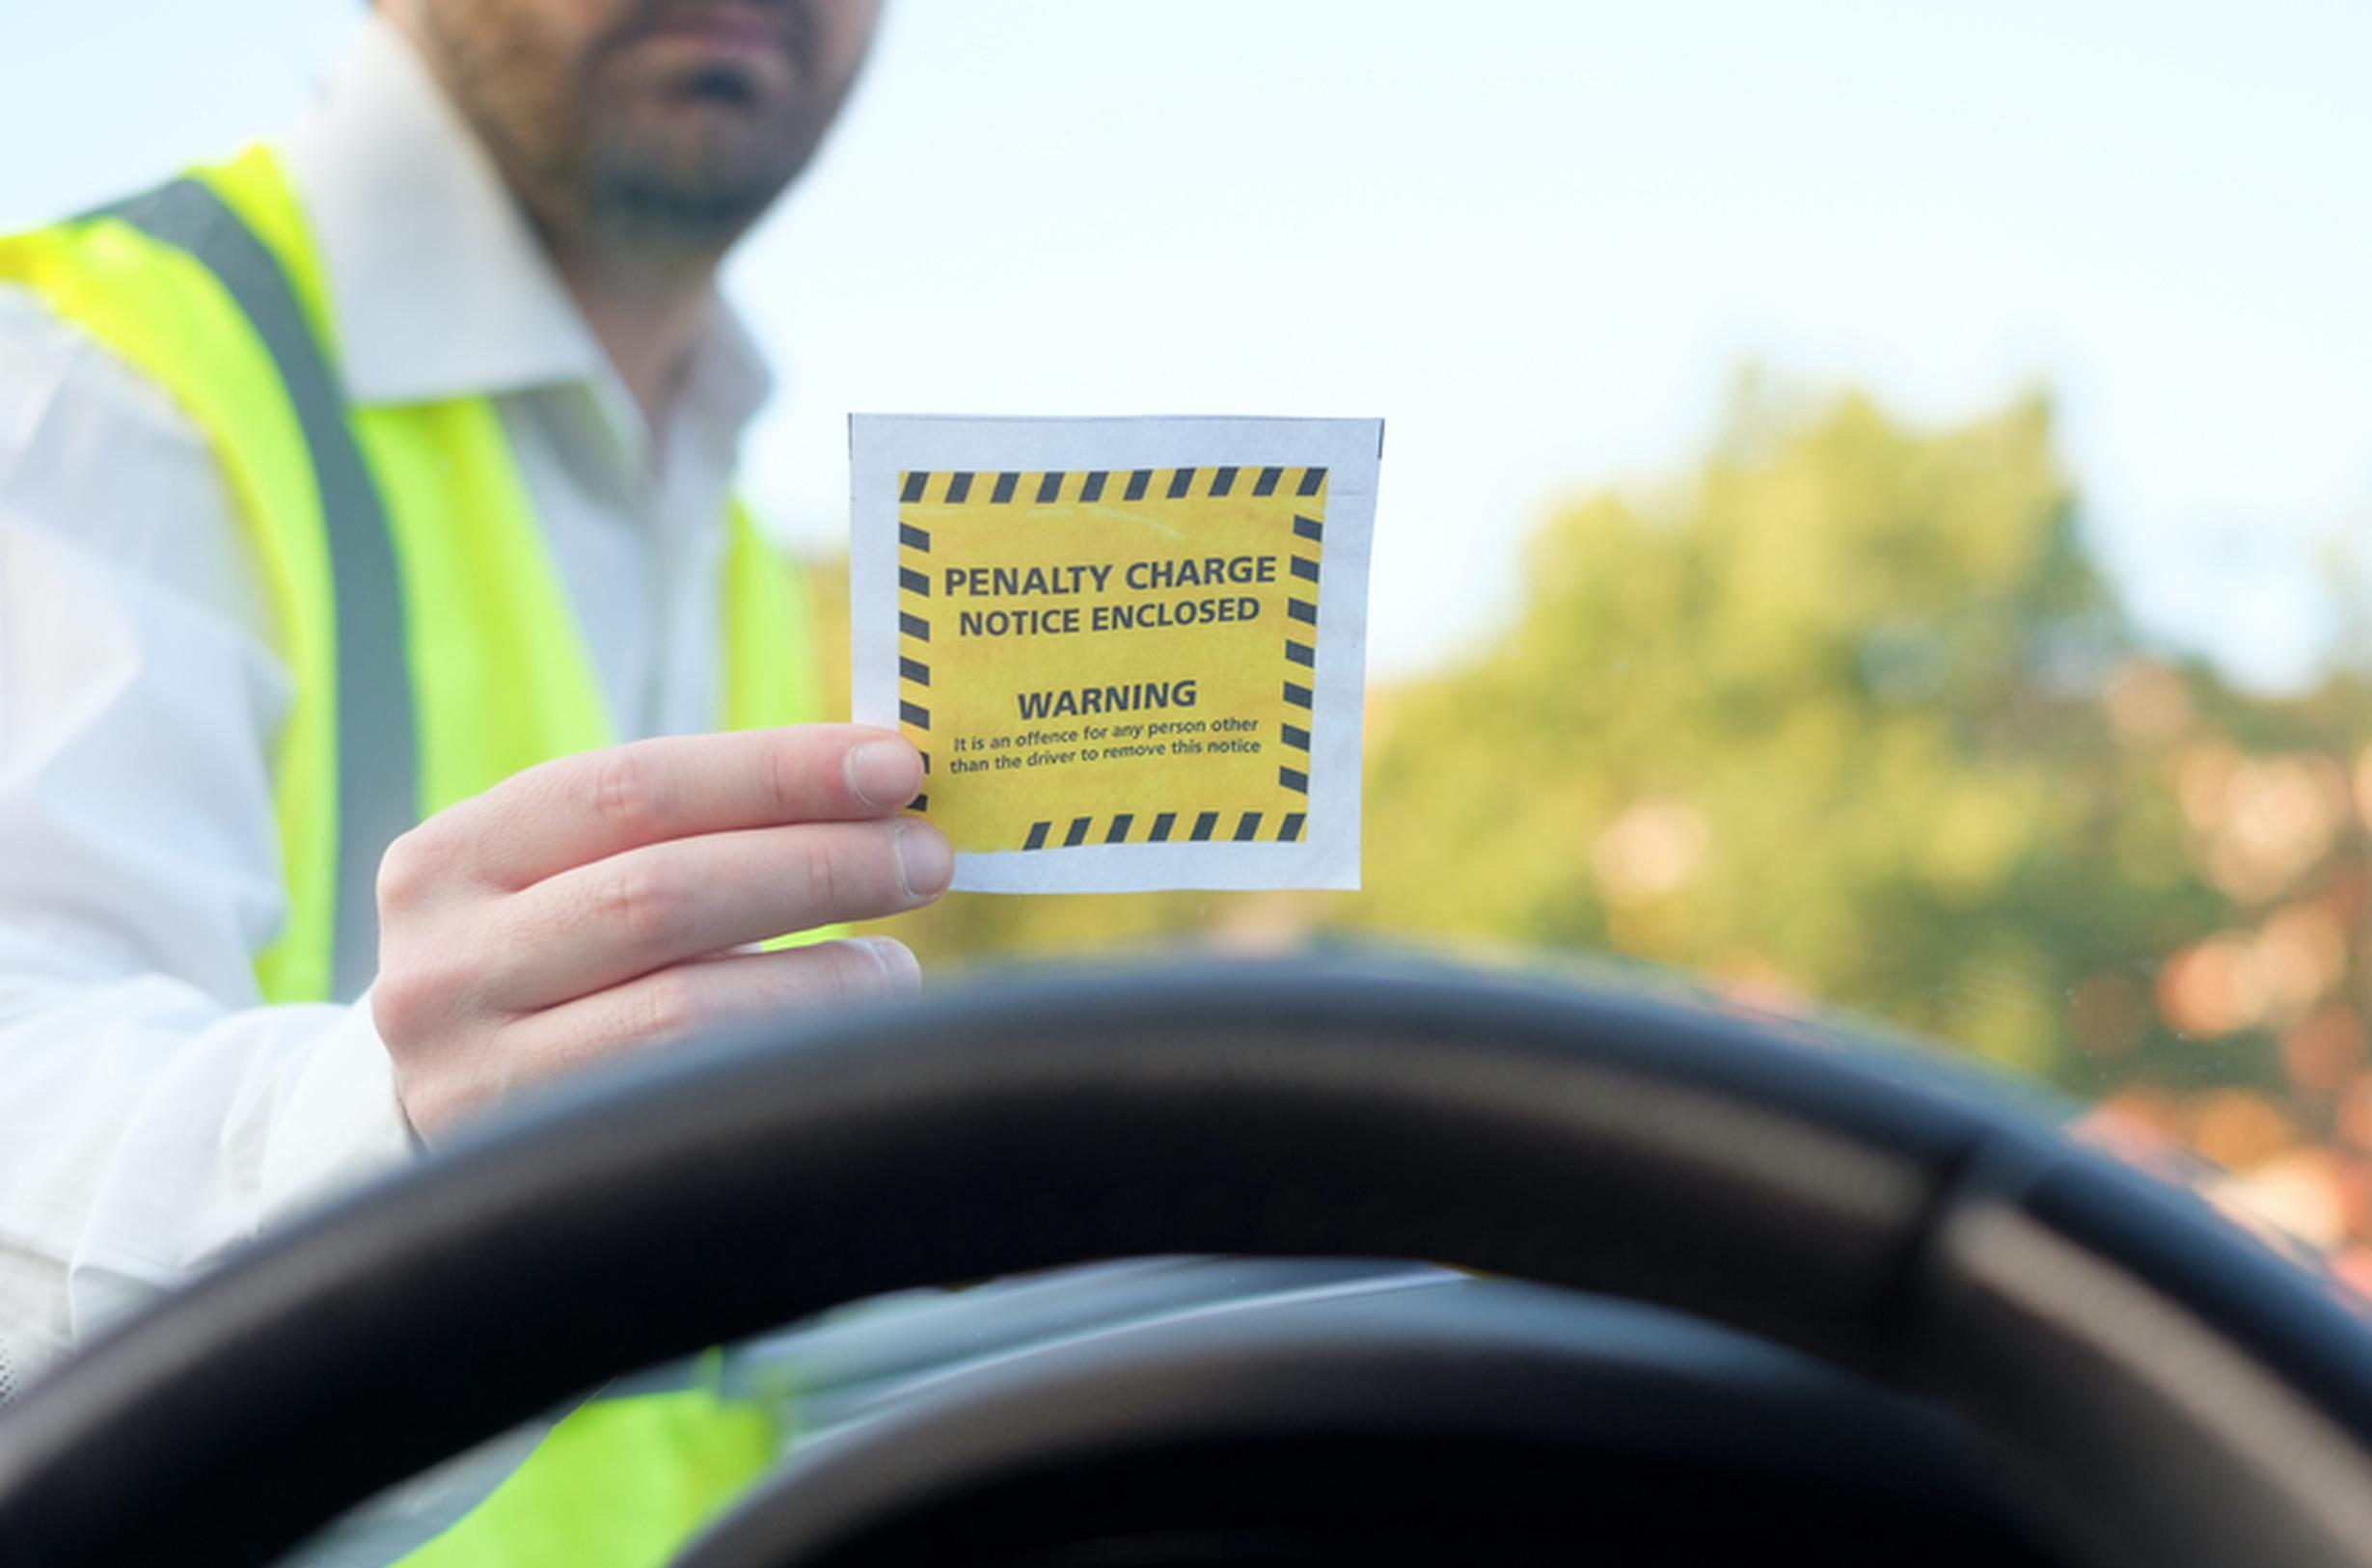 UK motorists amass a total of £570m in parking fines every year